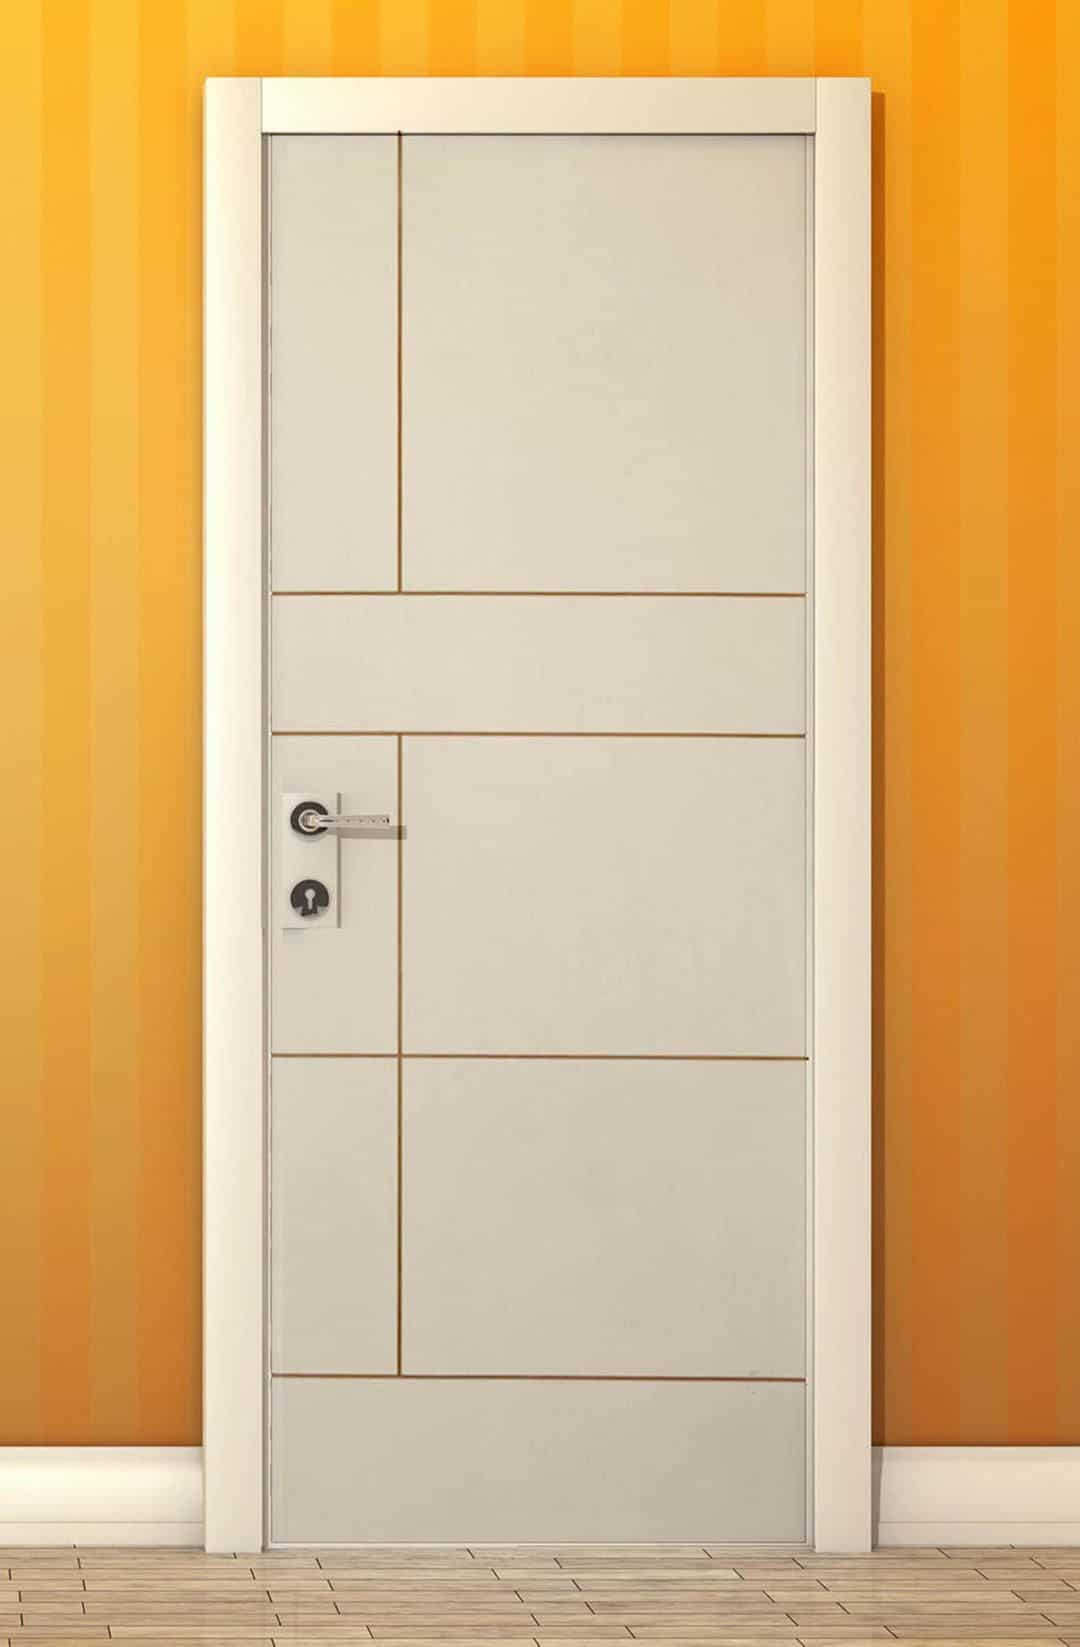 white wpc door design on a yellow wall